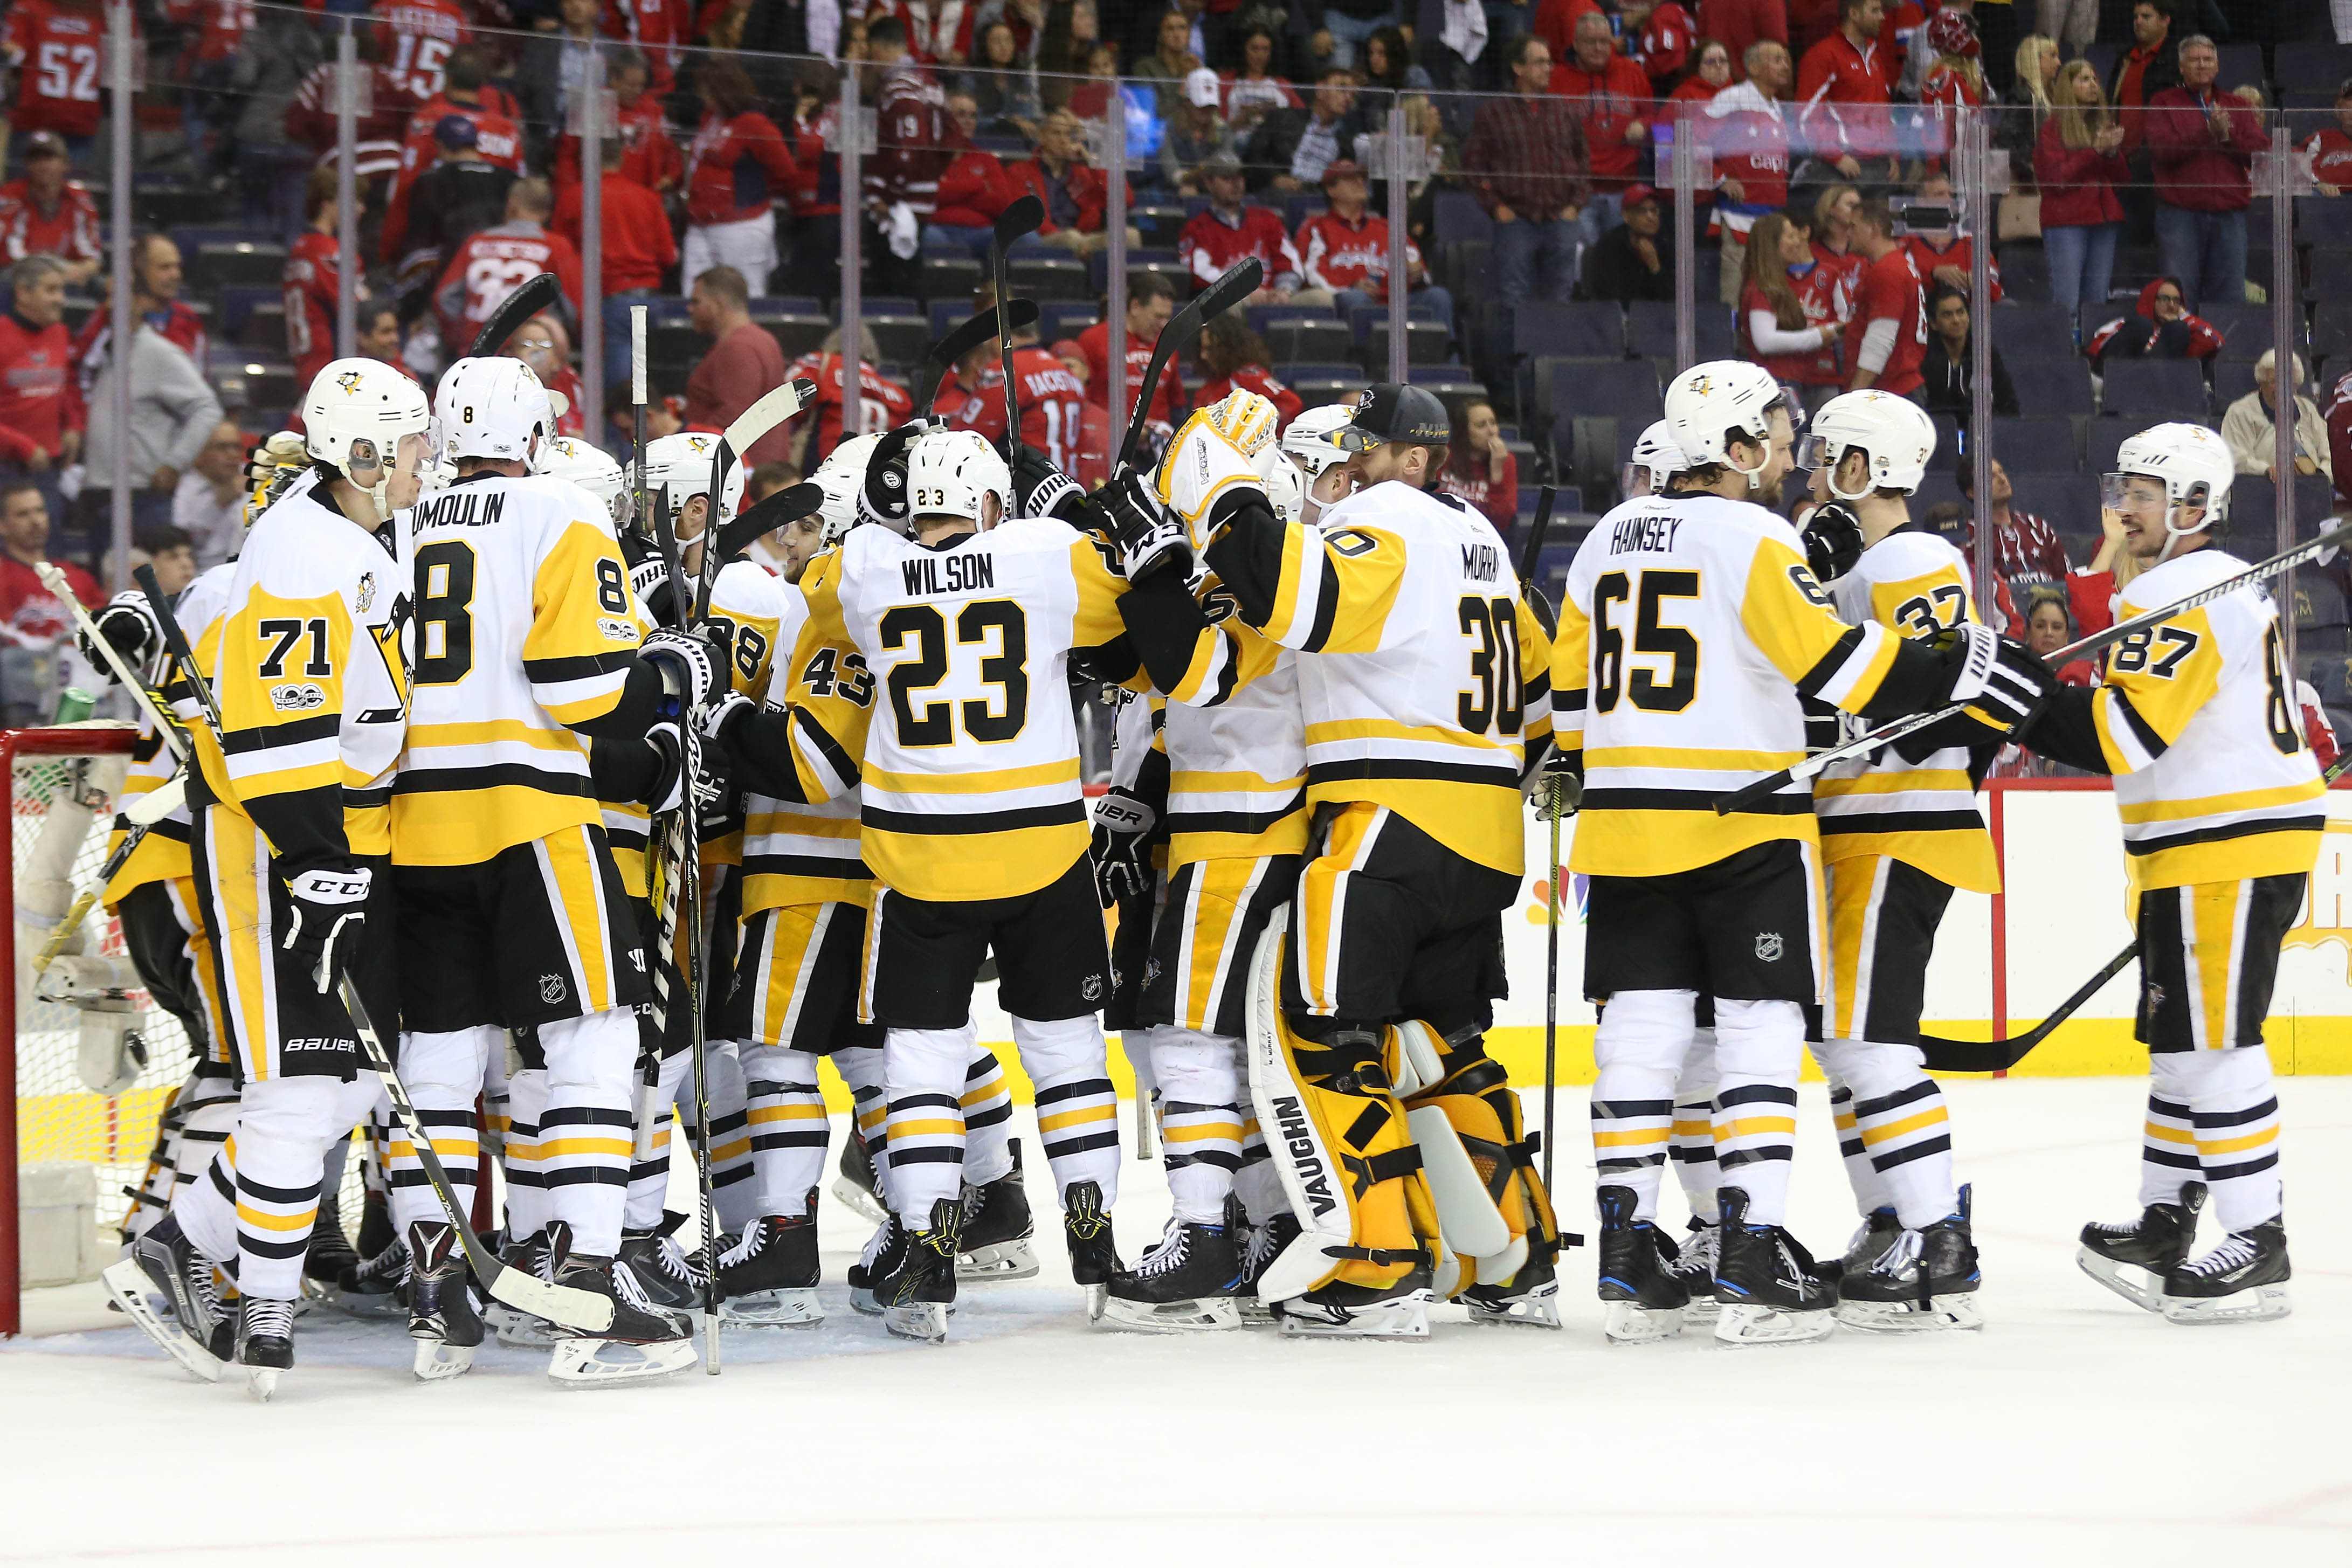 10050641-nhl-stanley-cup-playoffs-pittsburgh-penguins-at-washington-capitals